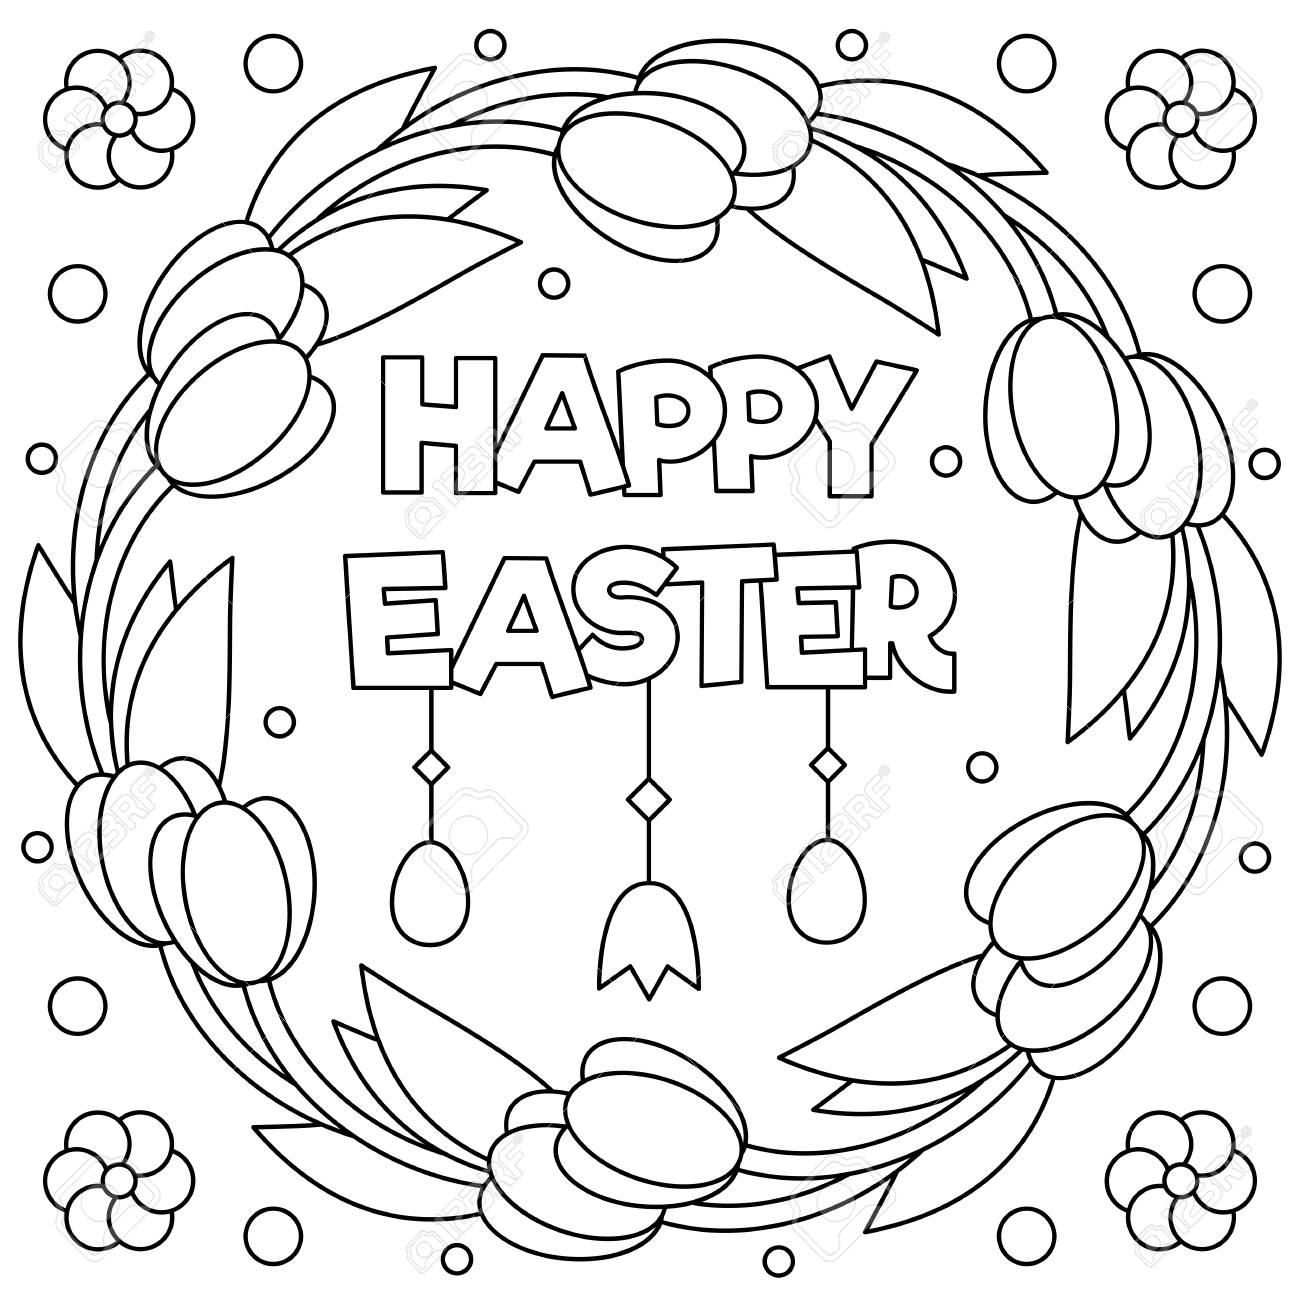 - Happy Easter. Coloring Page. Black And White Vector Illustration